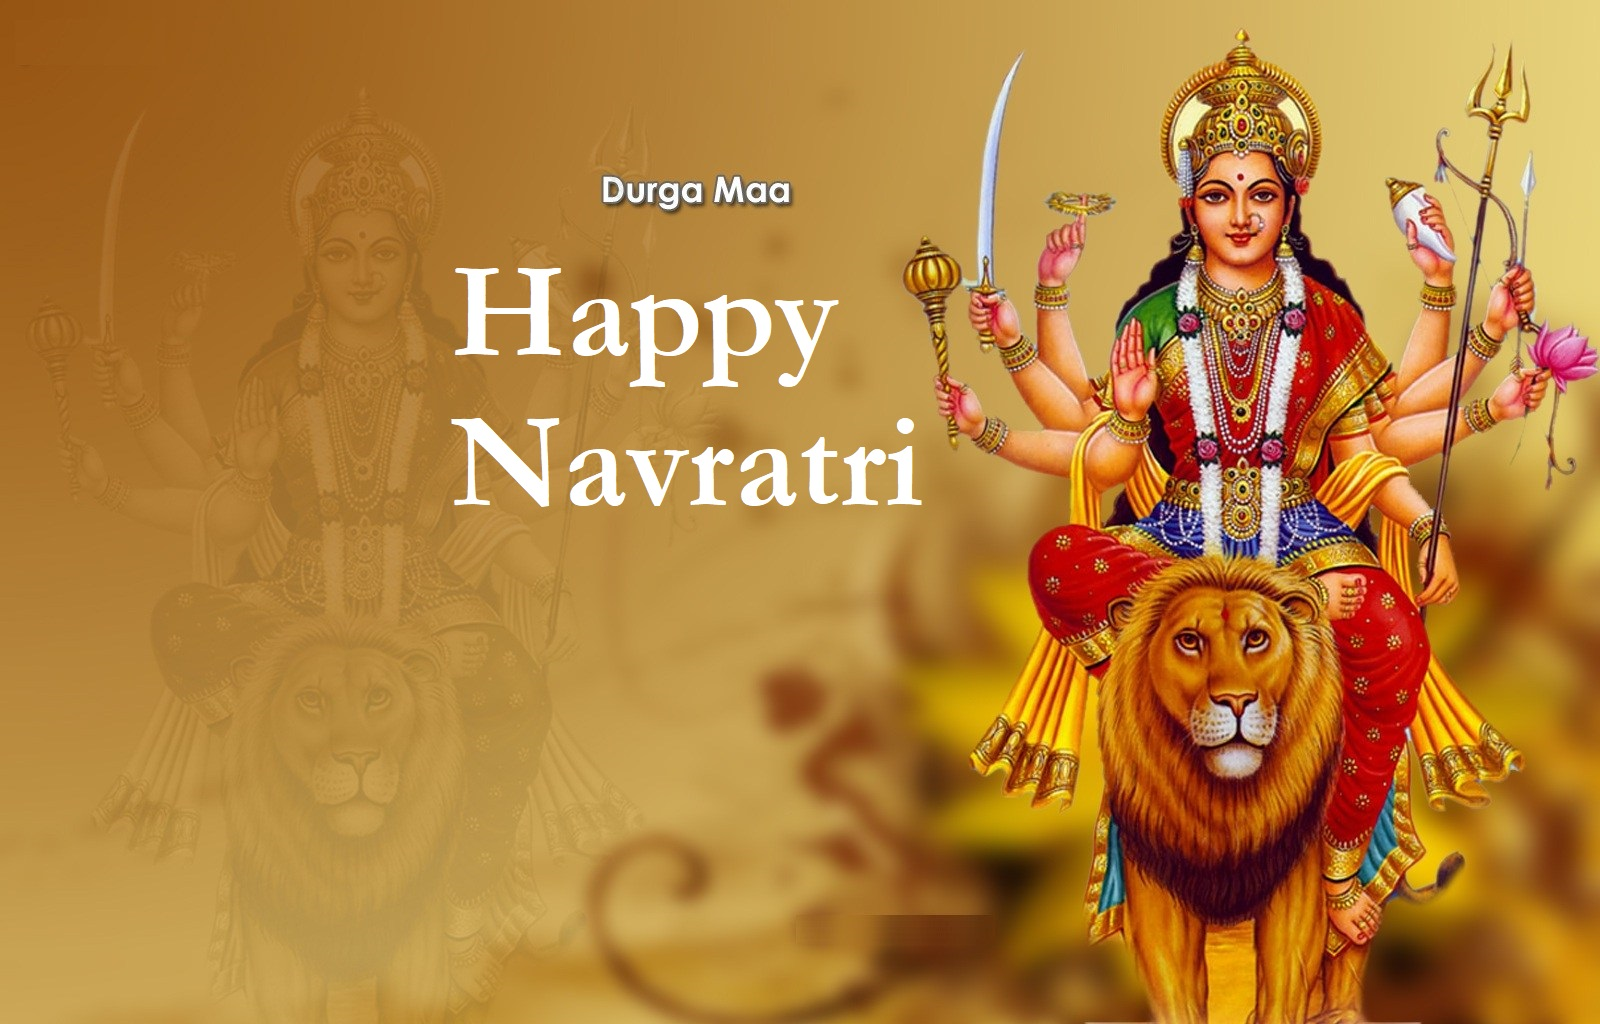 20 Beautiful Navratri Pictures Images For Facebook Whatsapp